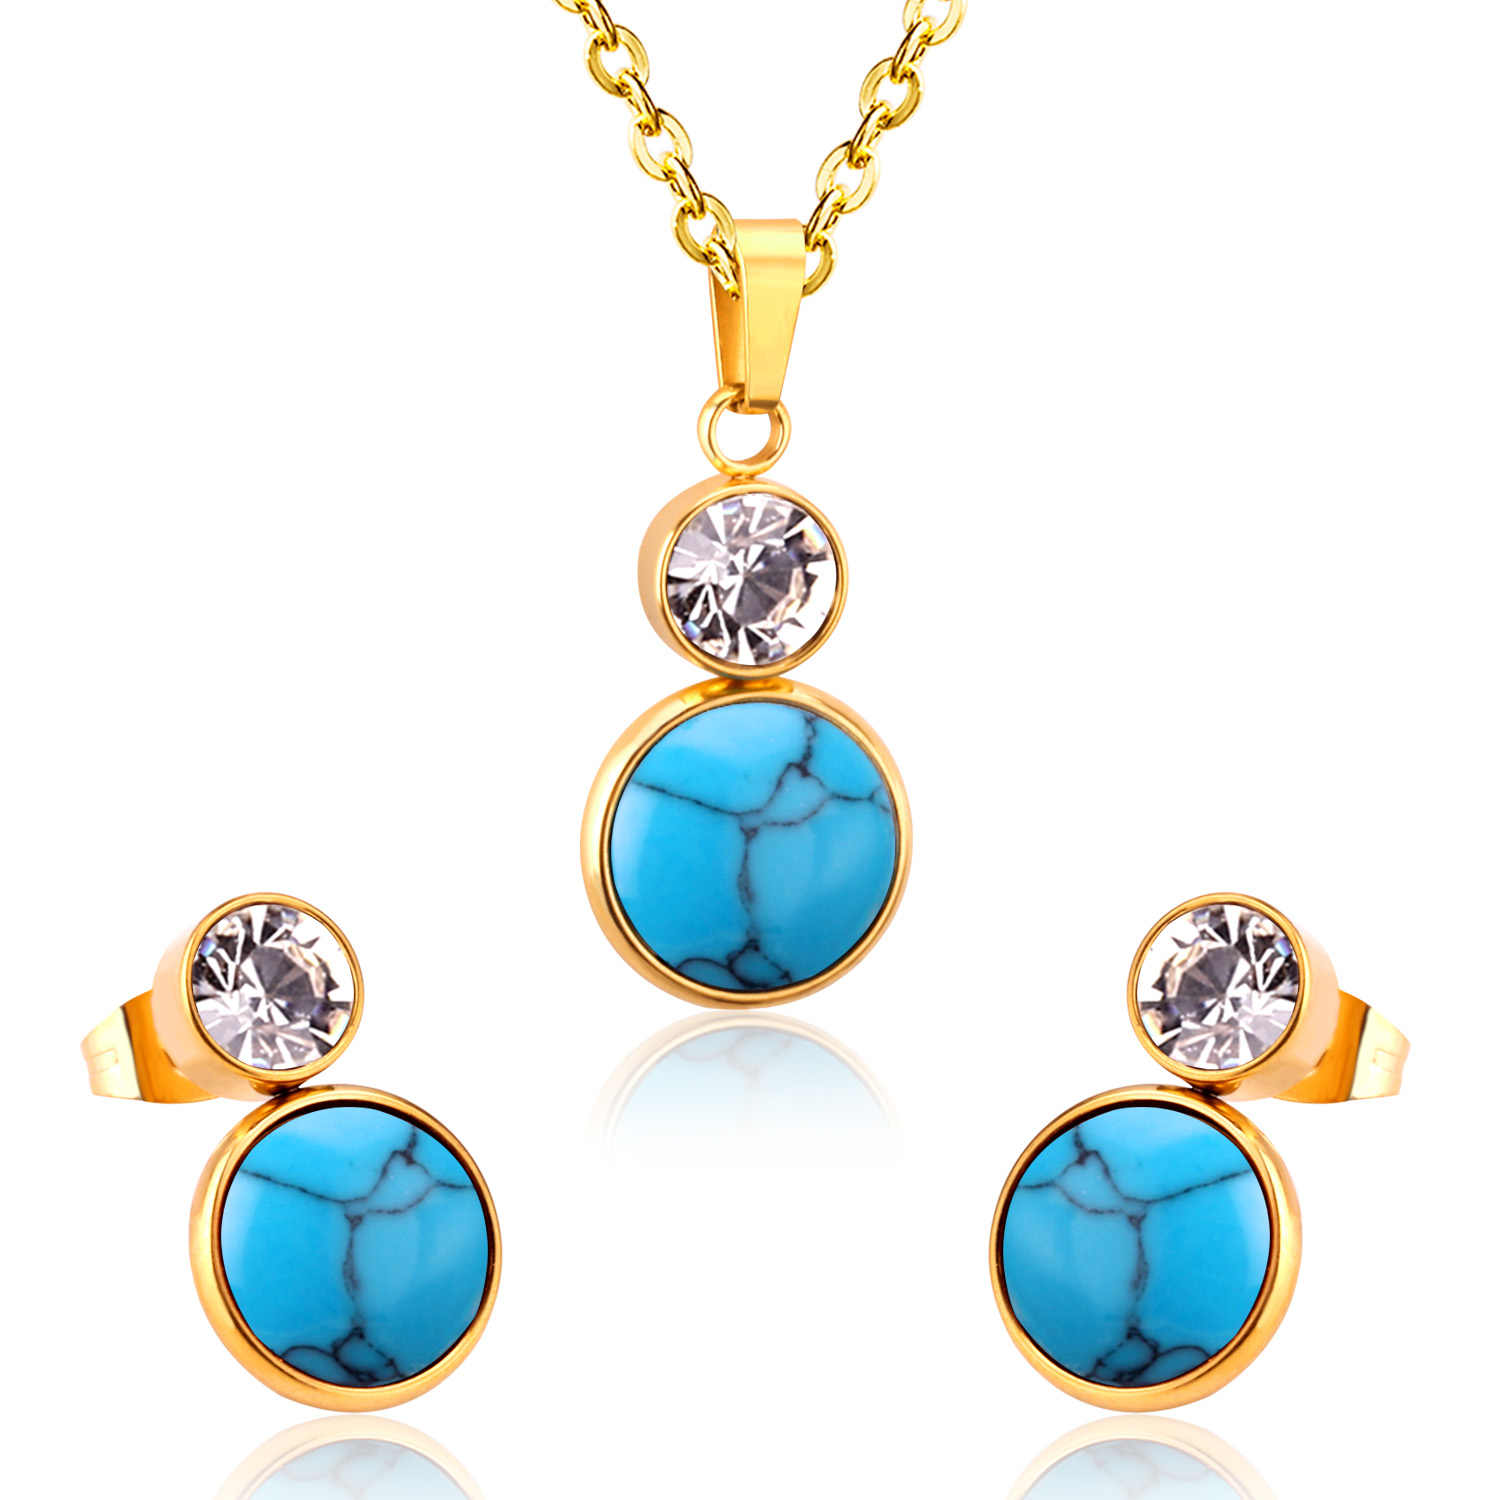 LUXUKISSKIDS Romantic Valentine's Day present CZ Opals Stainless Steel Jewelry Sets For Fashion Lady/Women